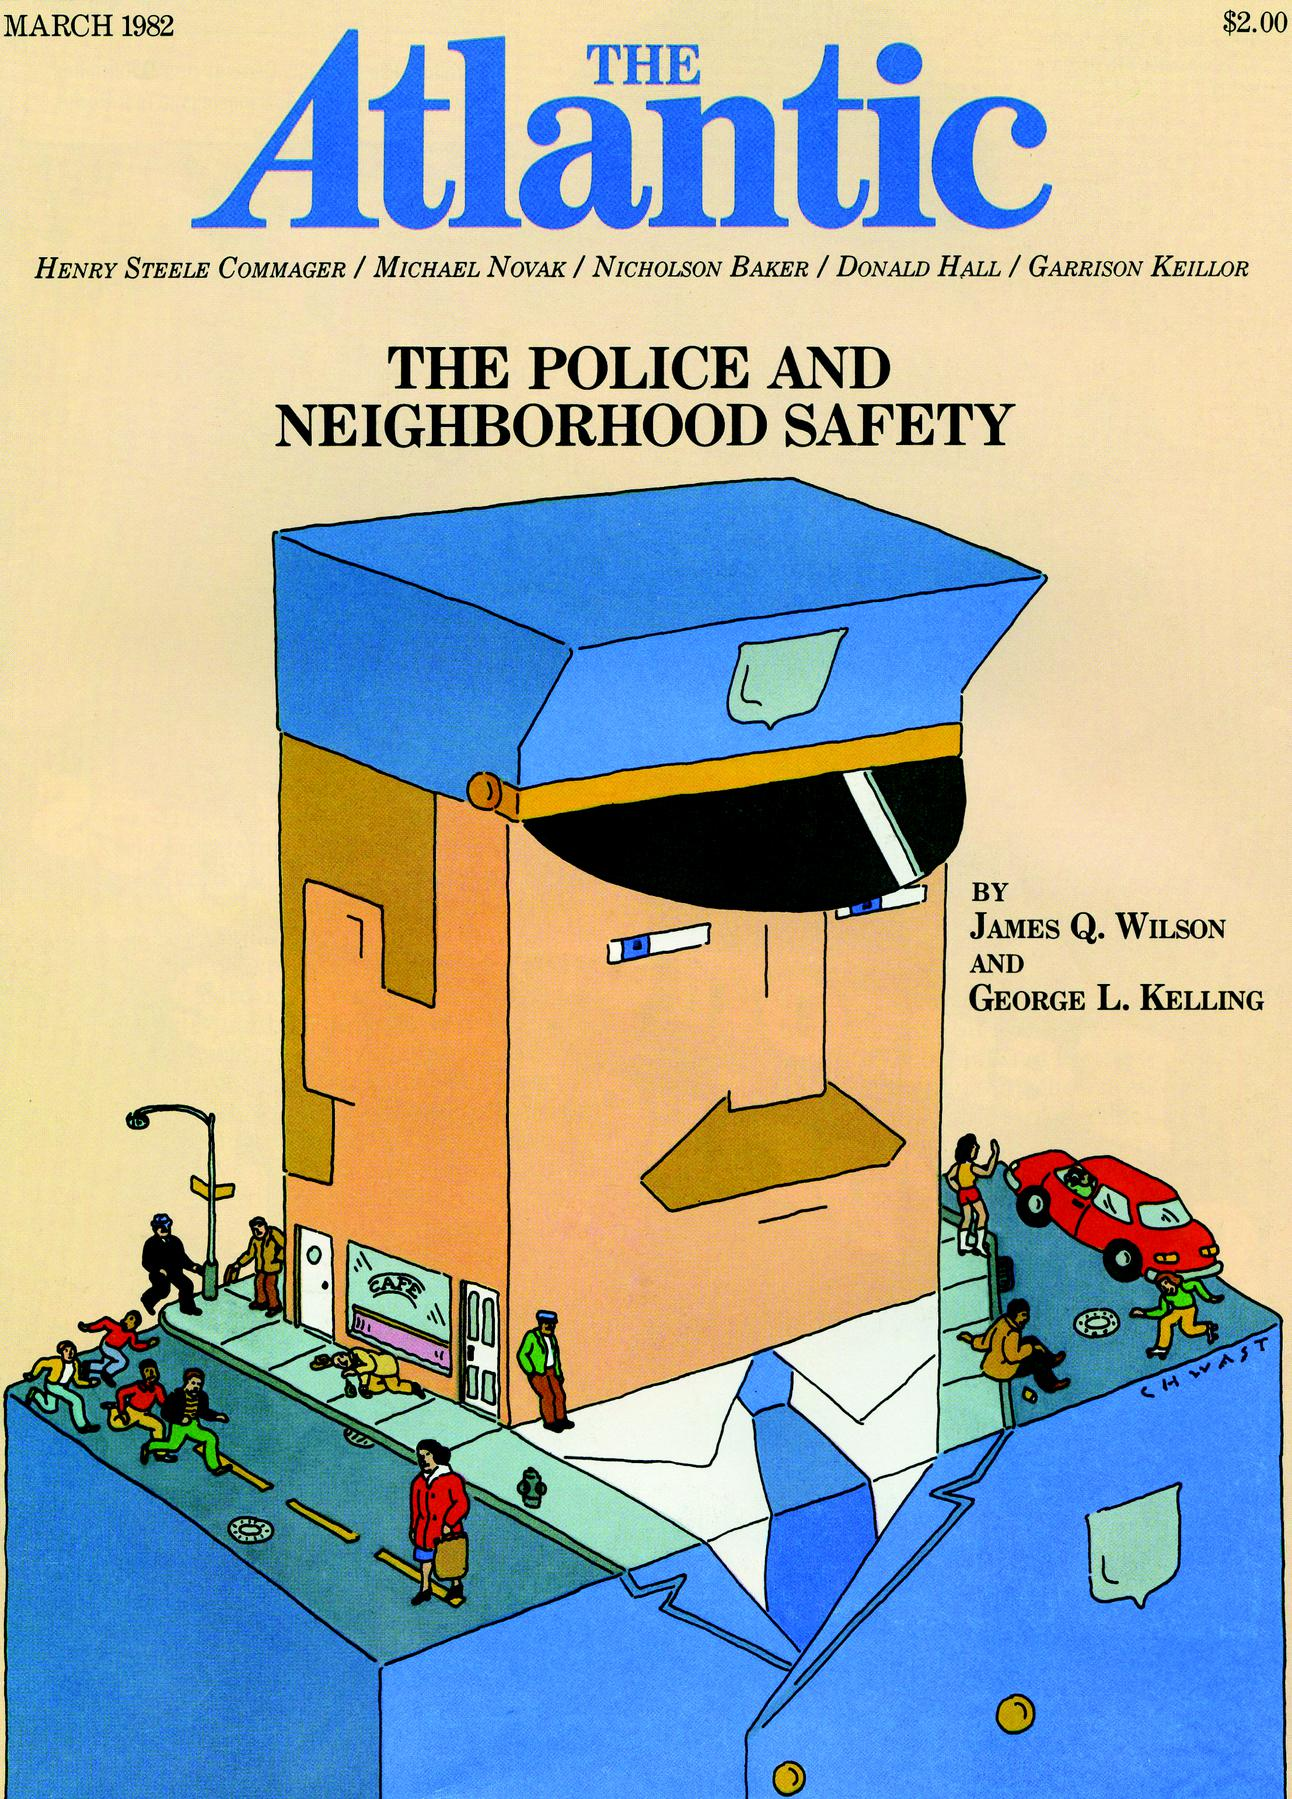 march 1982 issue